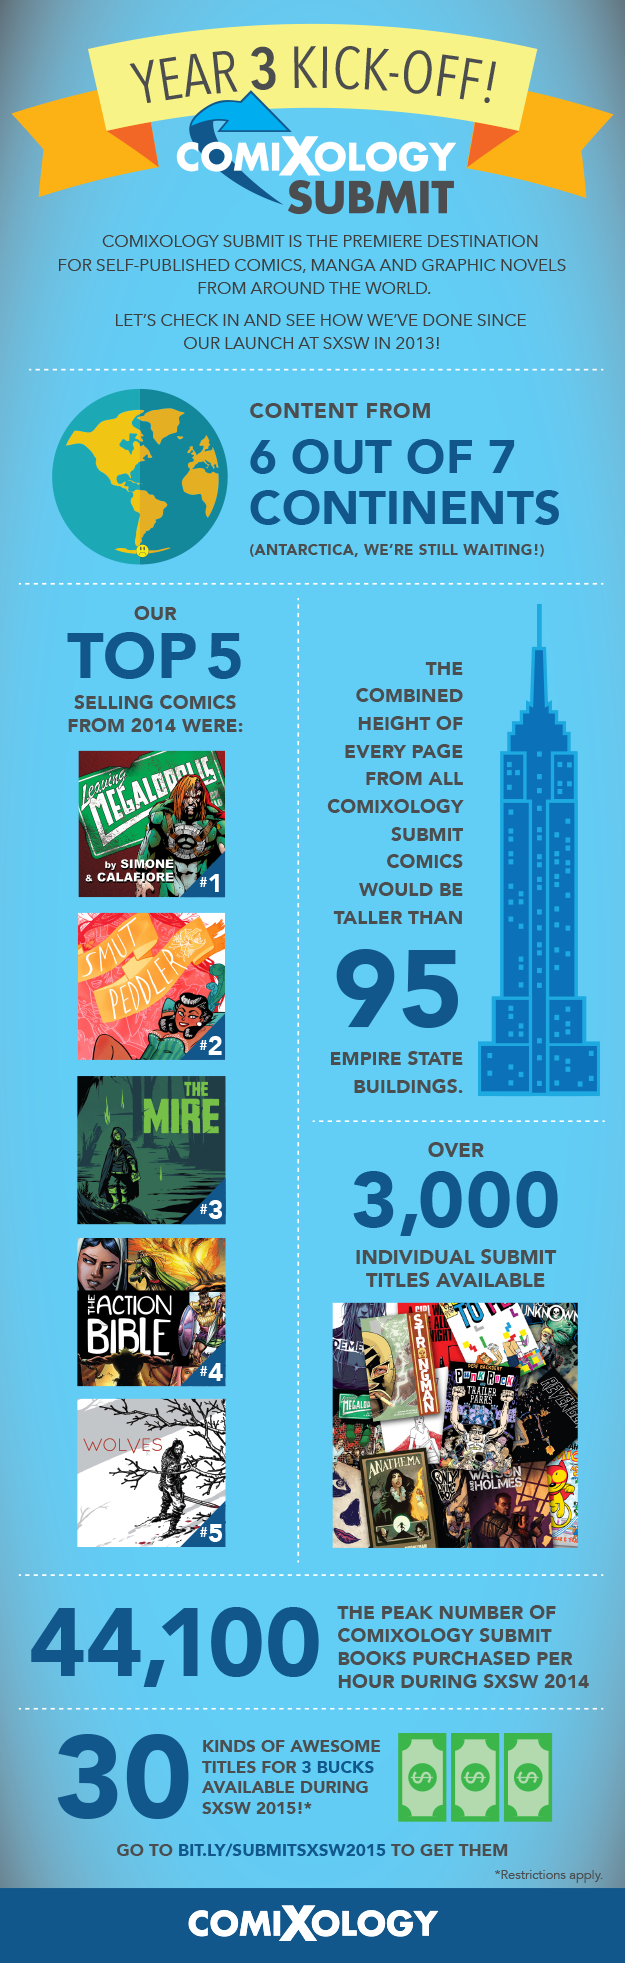 comixology submit infographic